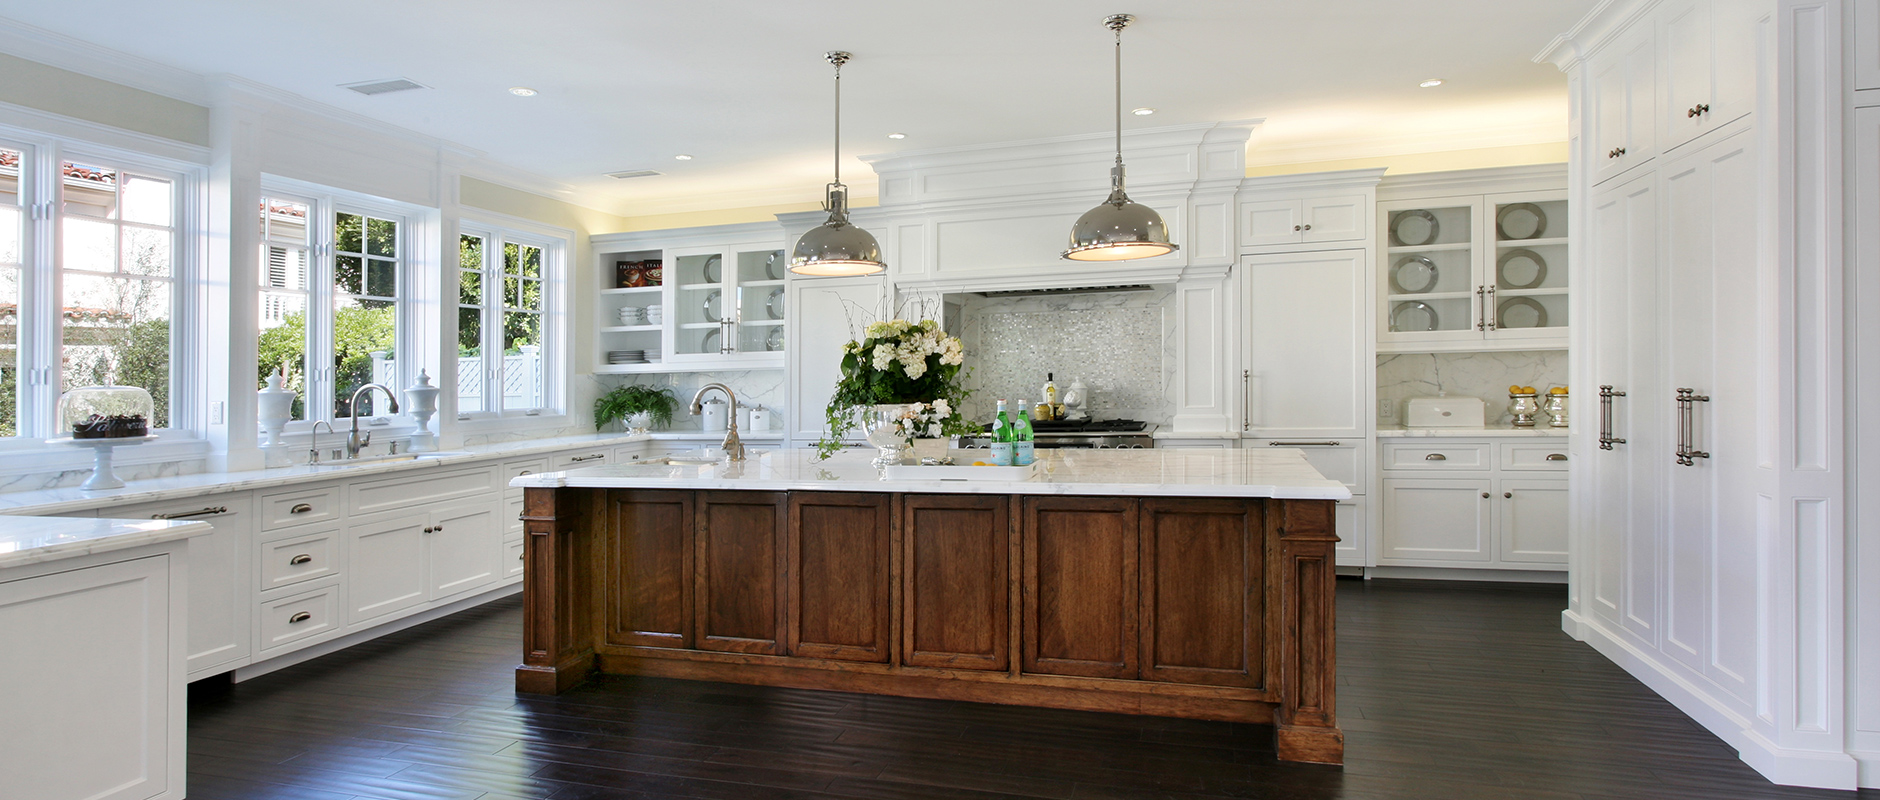 tappingtradition2_kitchen_2x.jpg